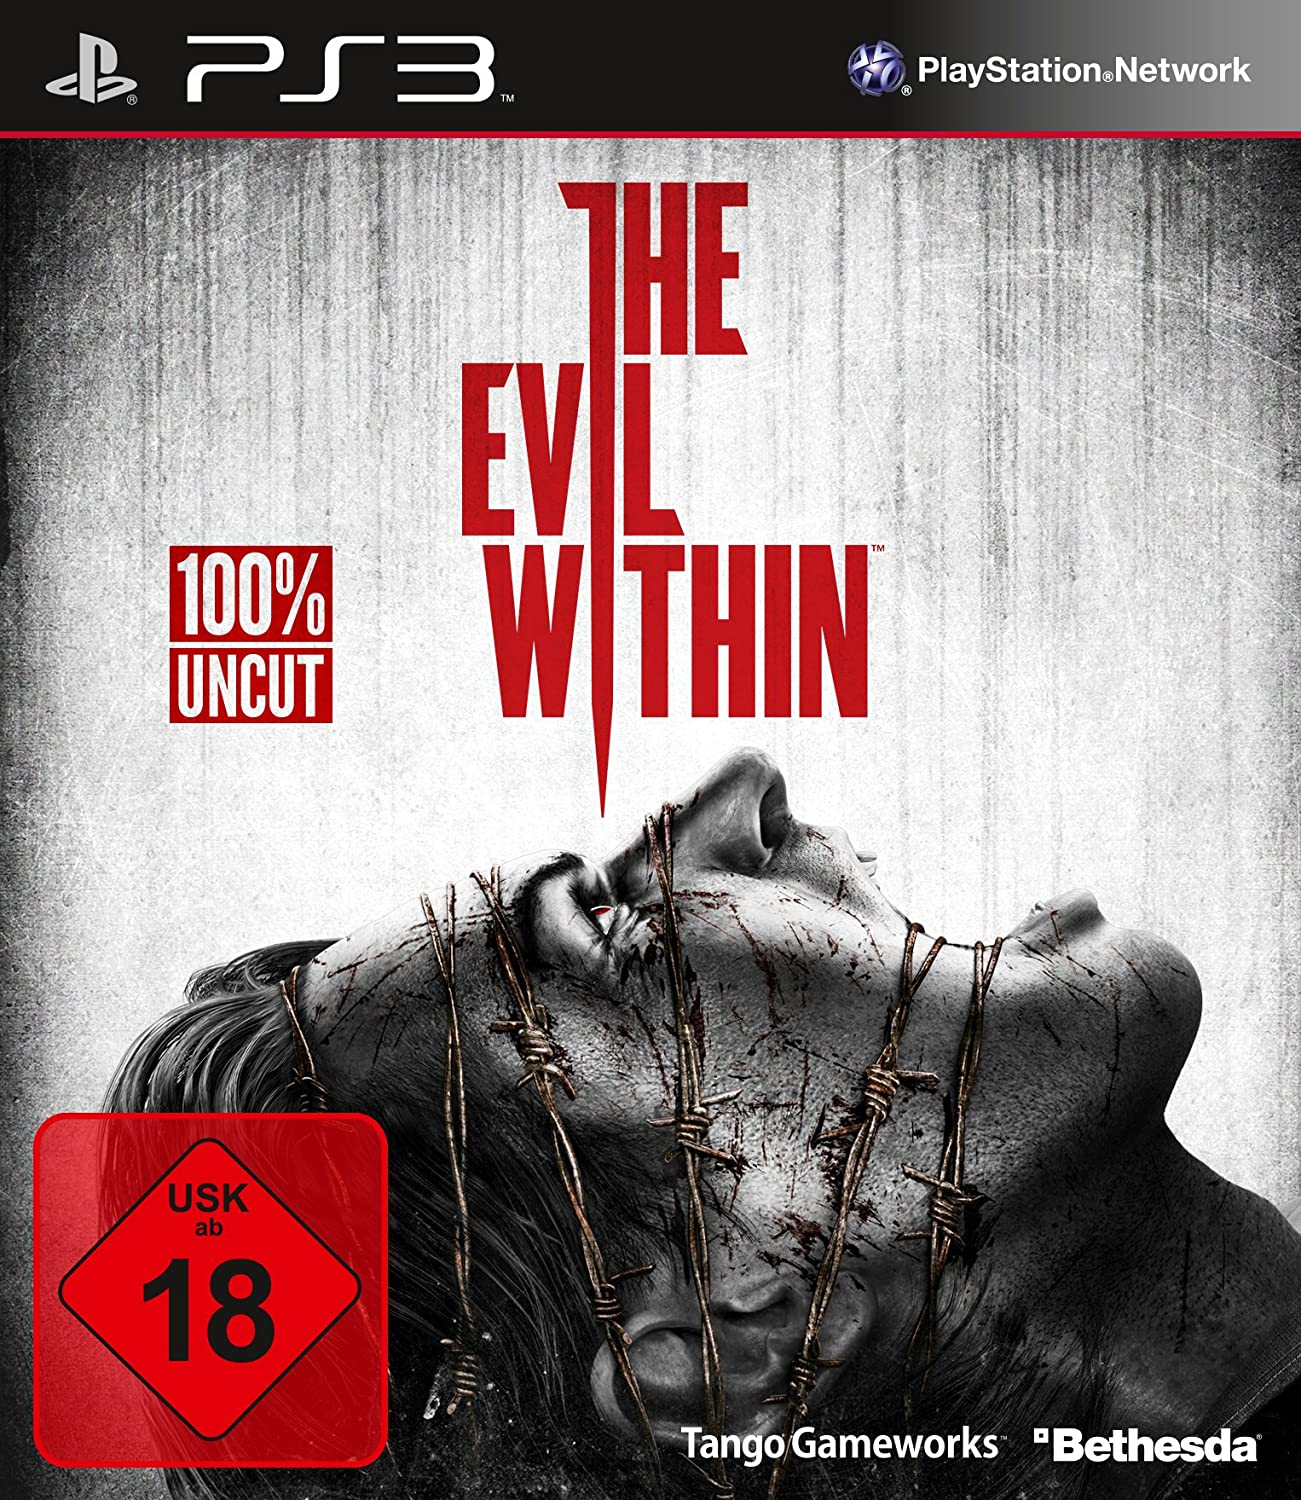 The Evil Within - Sony PlayStation 3 by Bethesda